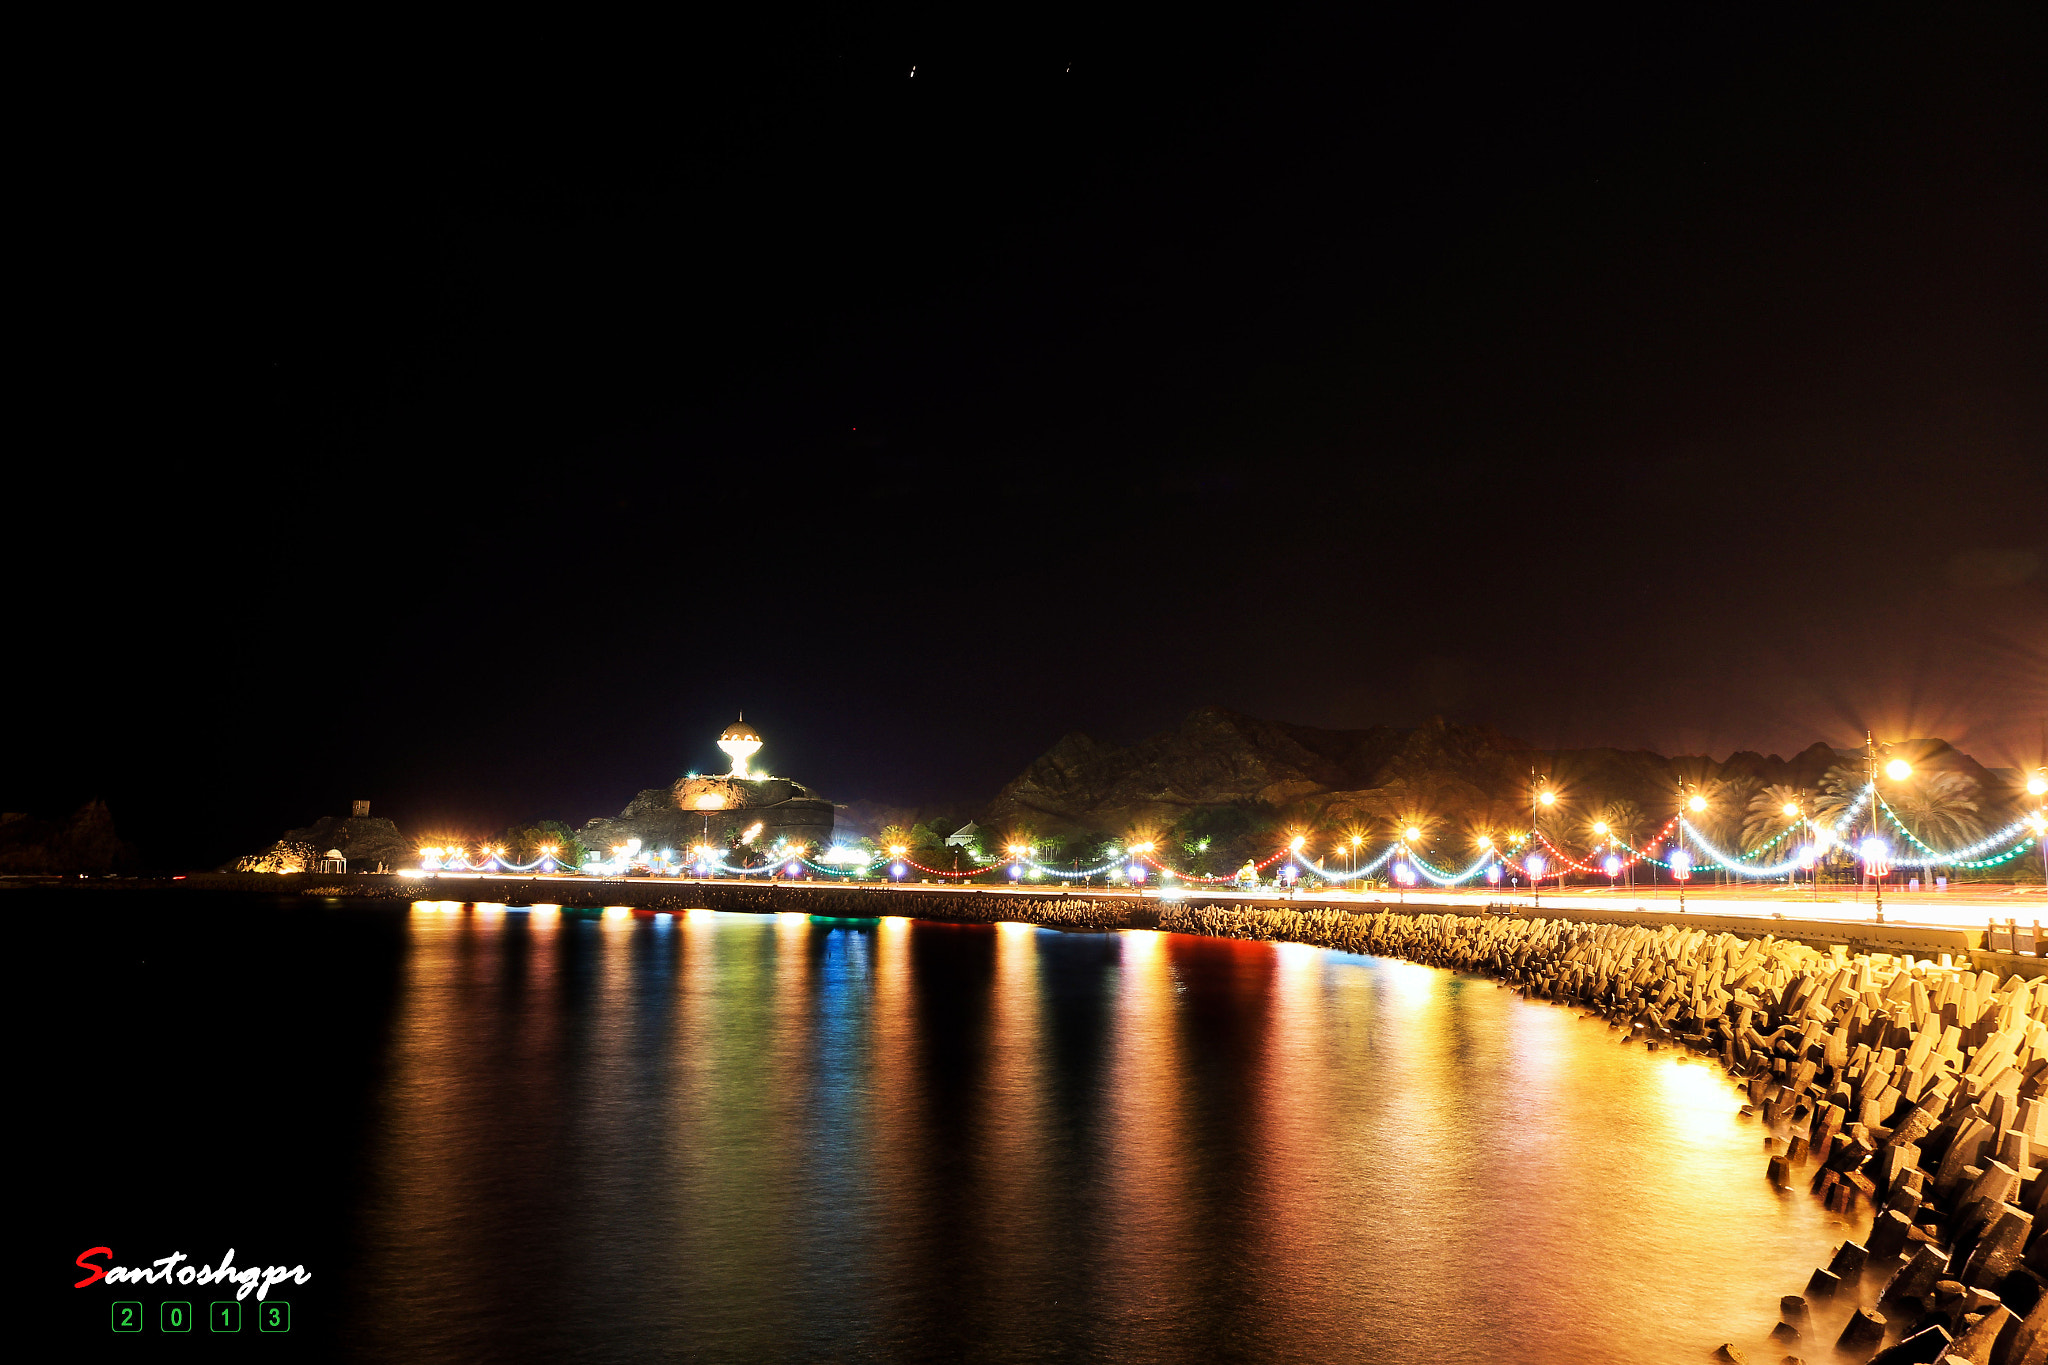 Photograph Muscat Marina .... by Santosh Prabhu on 500px